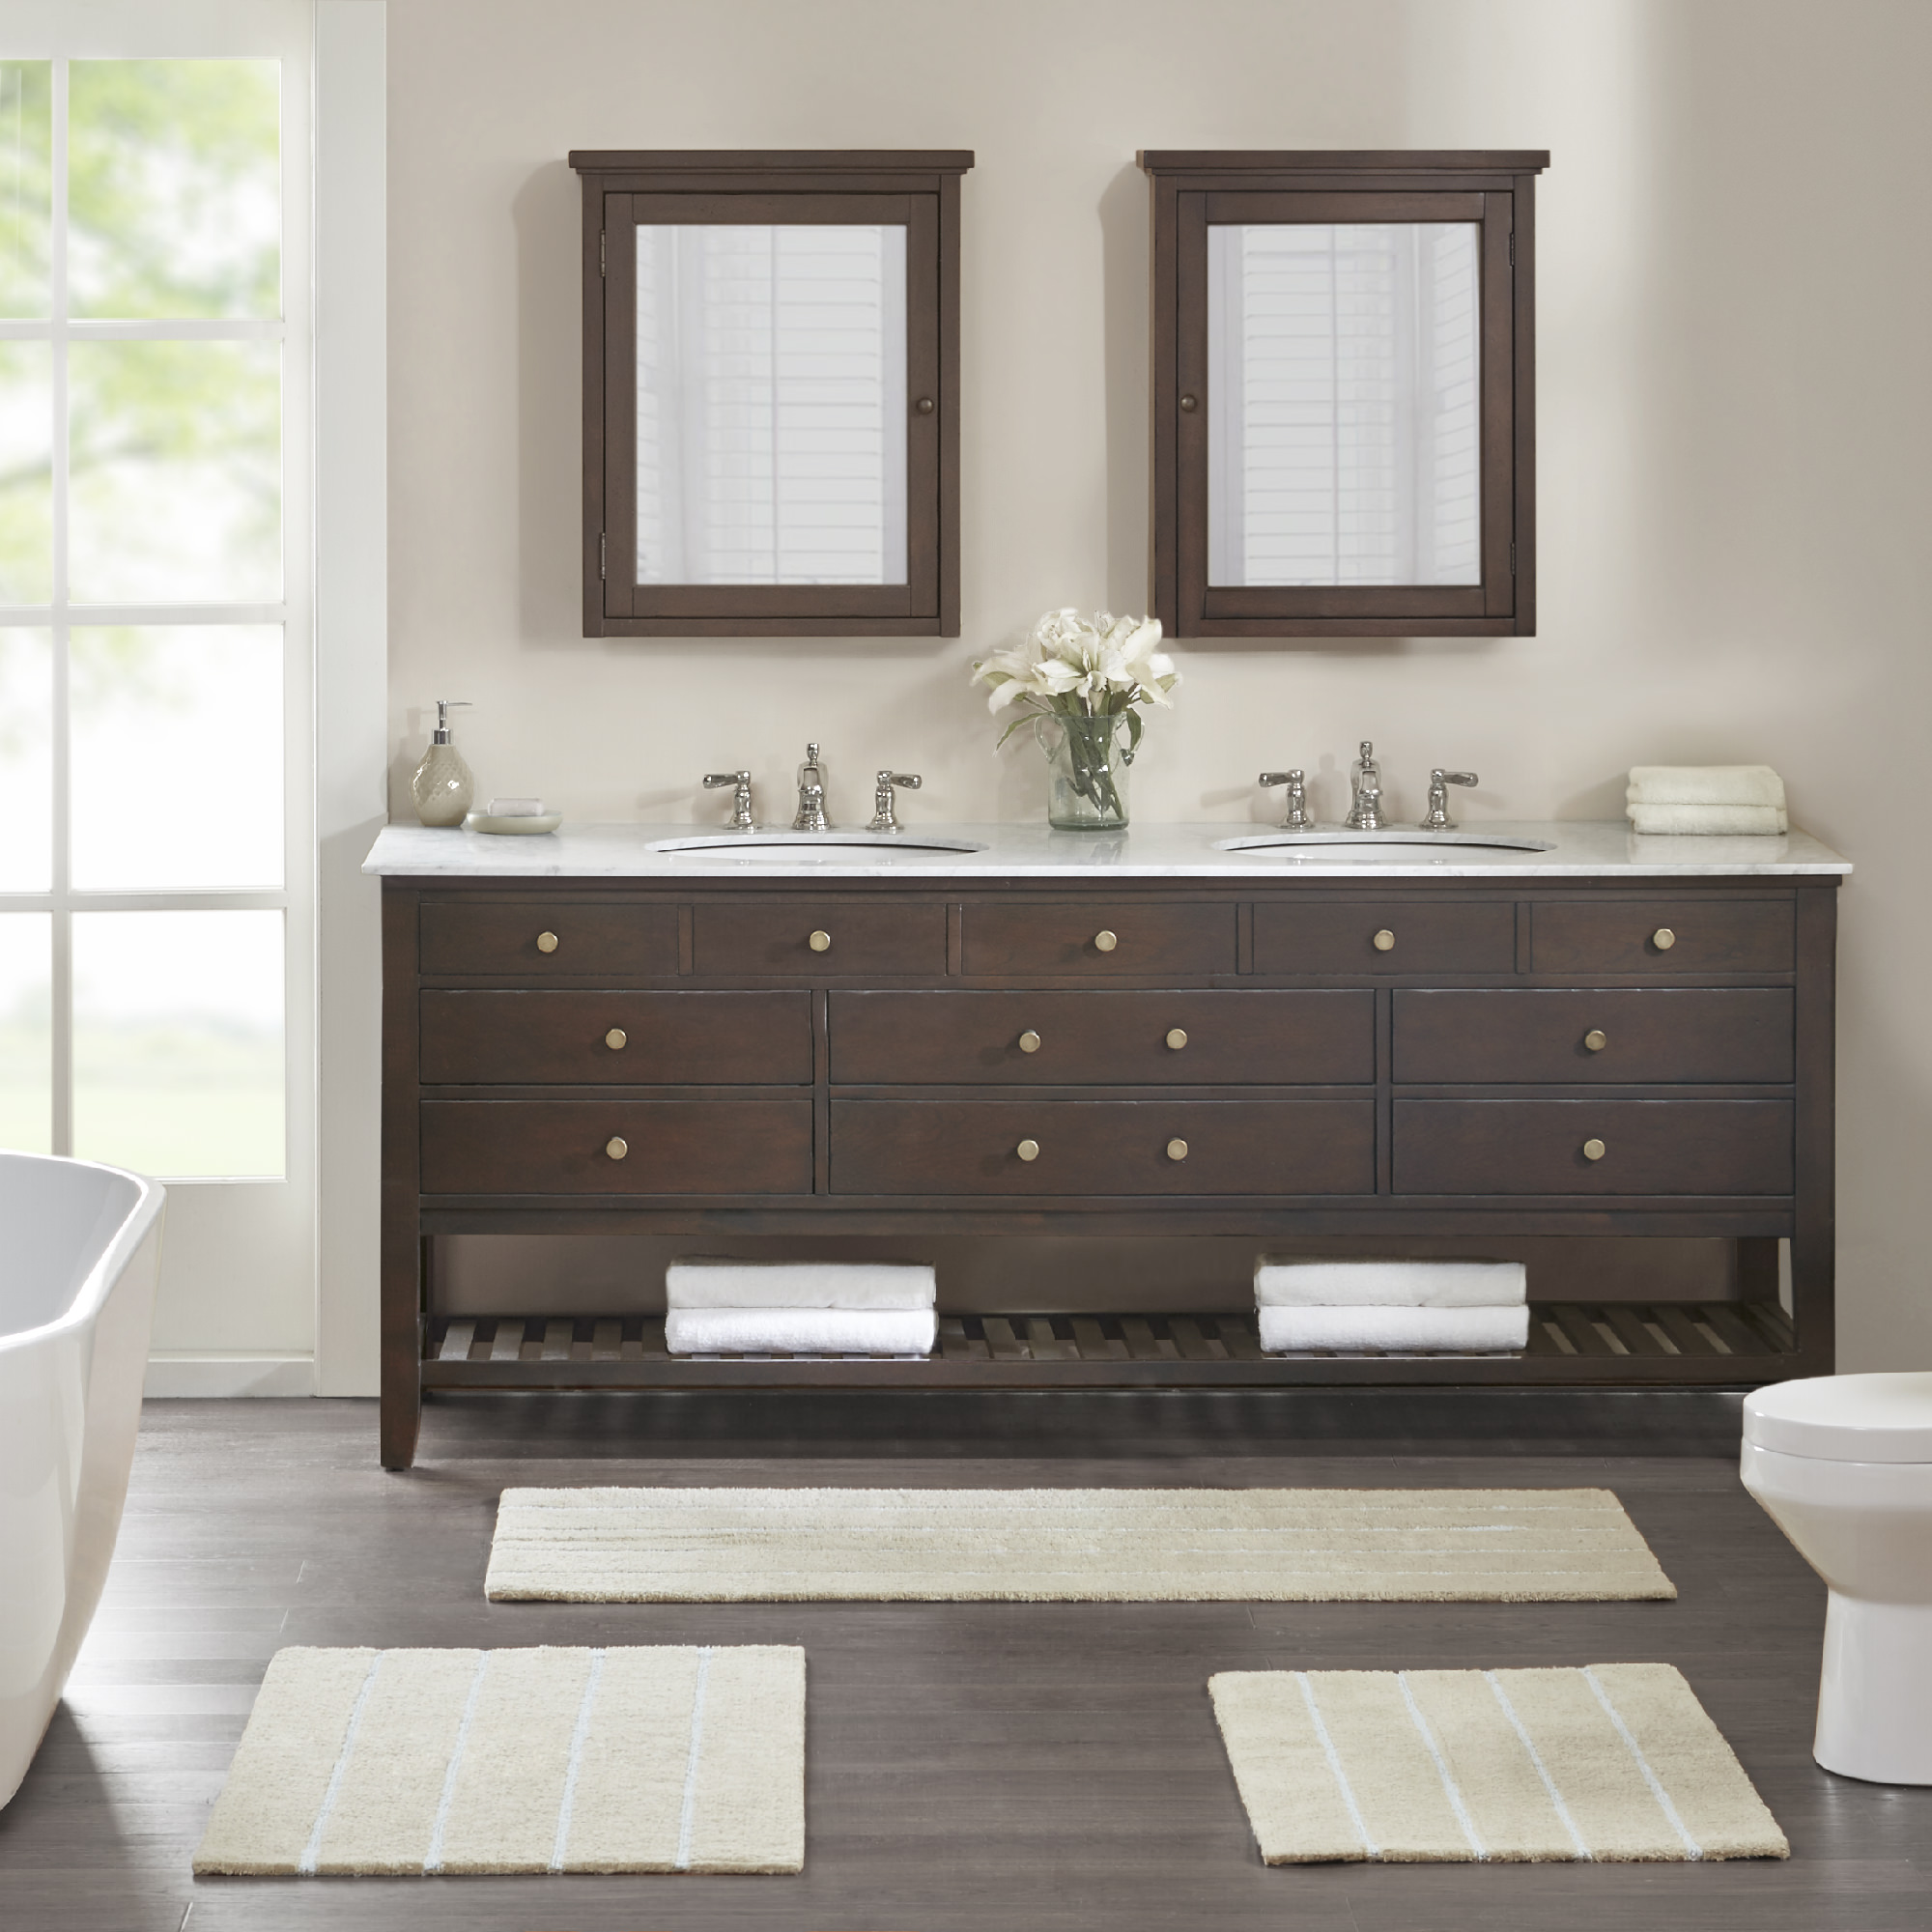 Home Essence Darien Cotton Tufted And Looped Stripe Bath